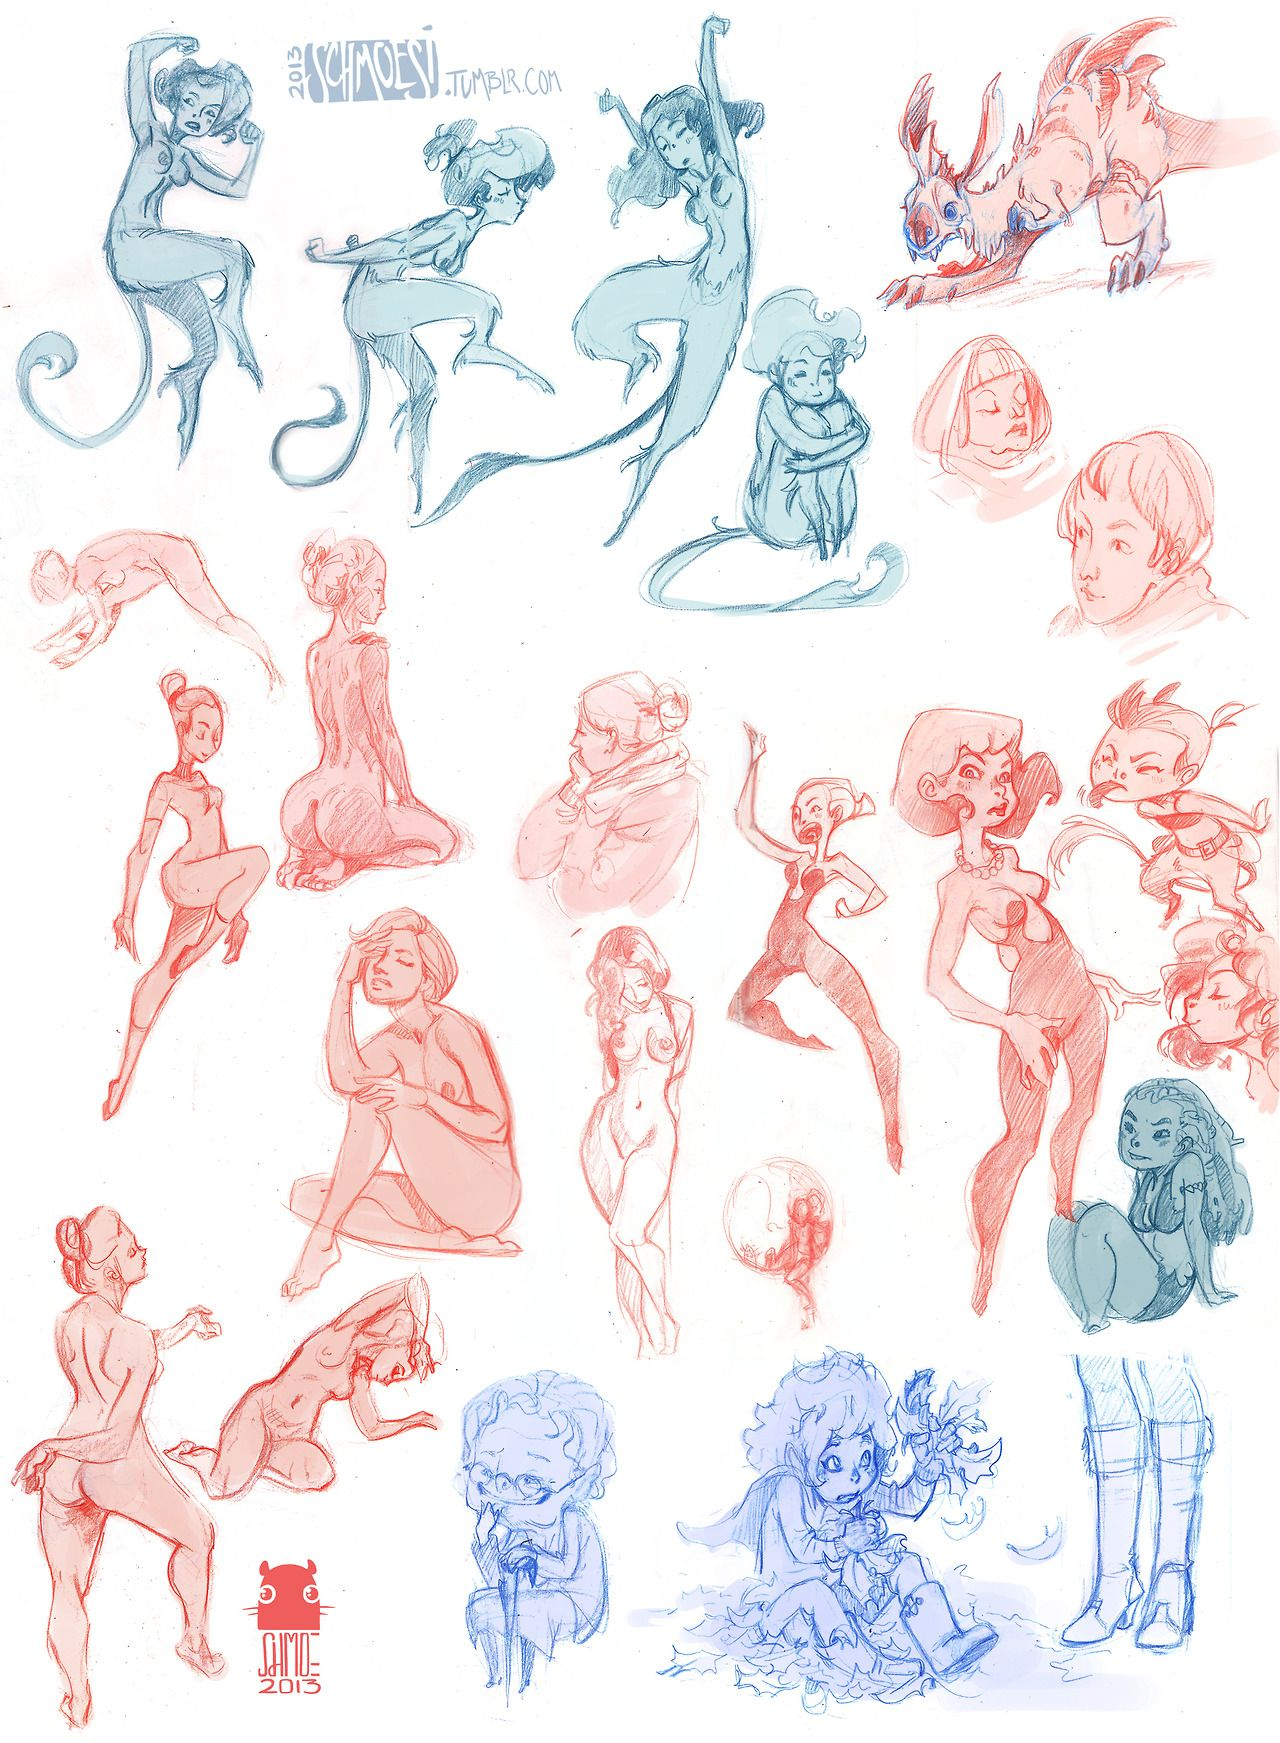 Sketches my favs are the faun ladies 3